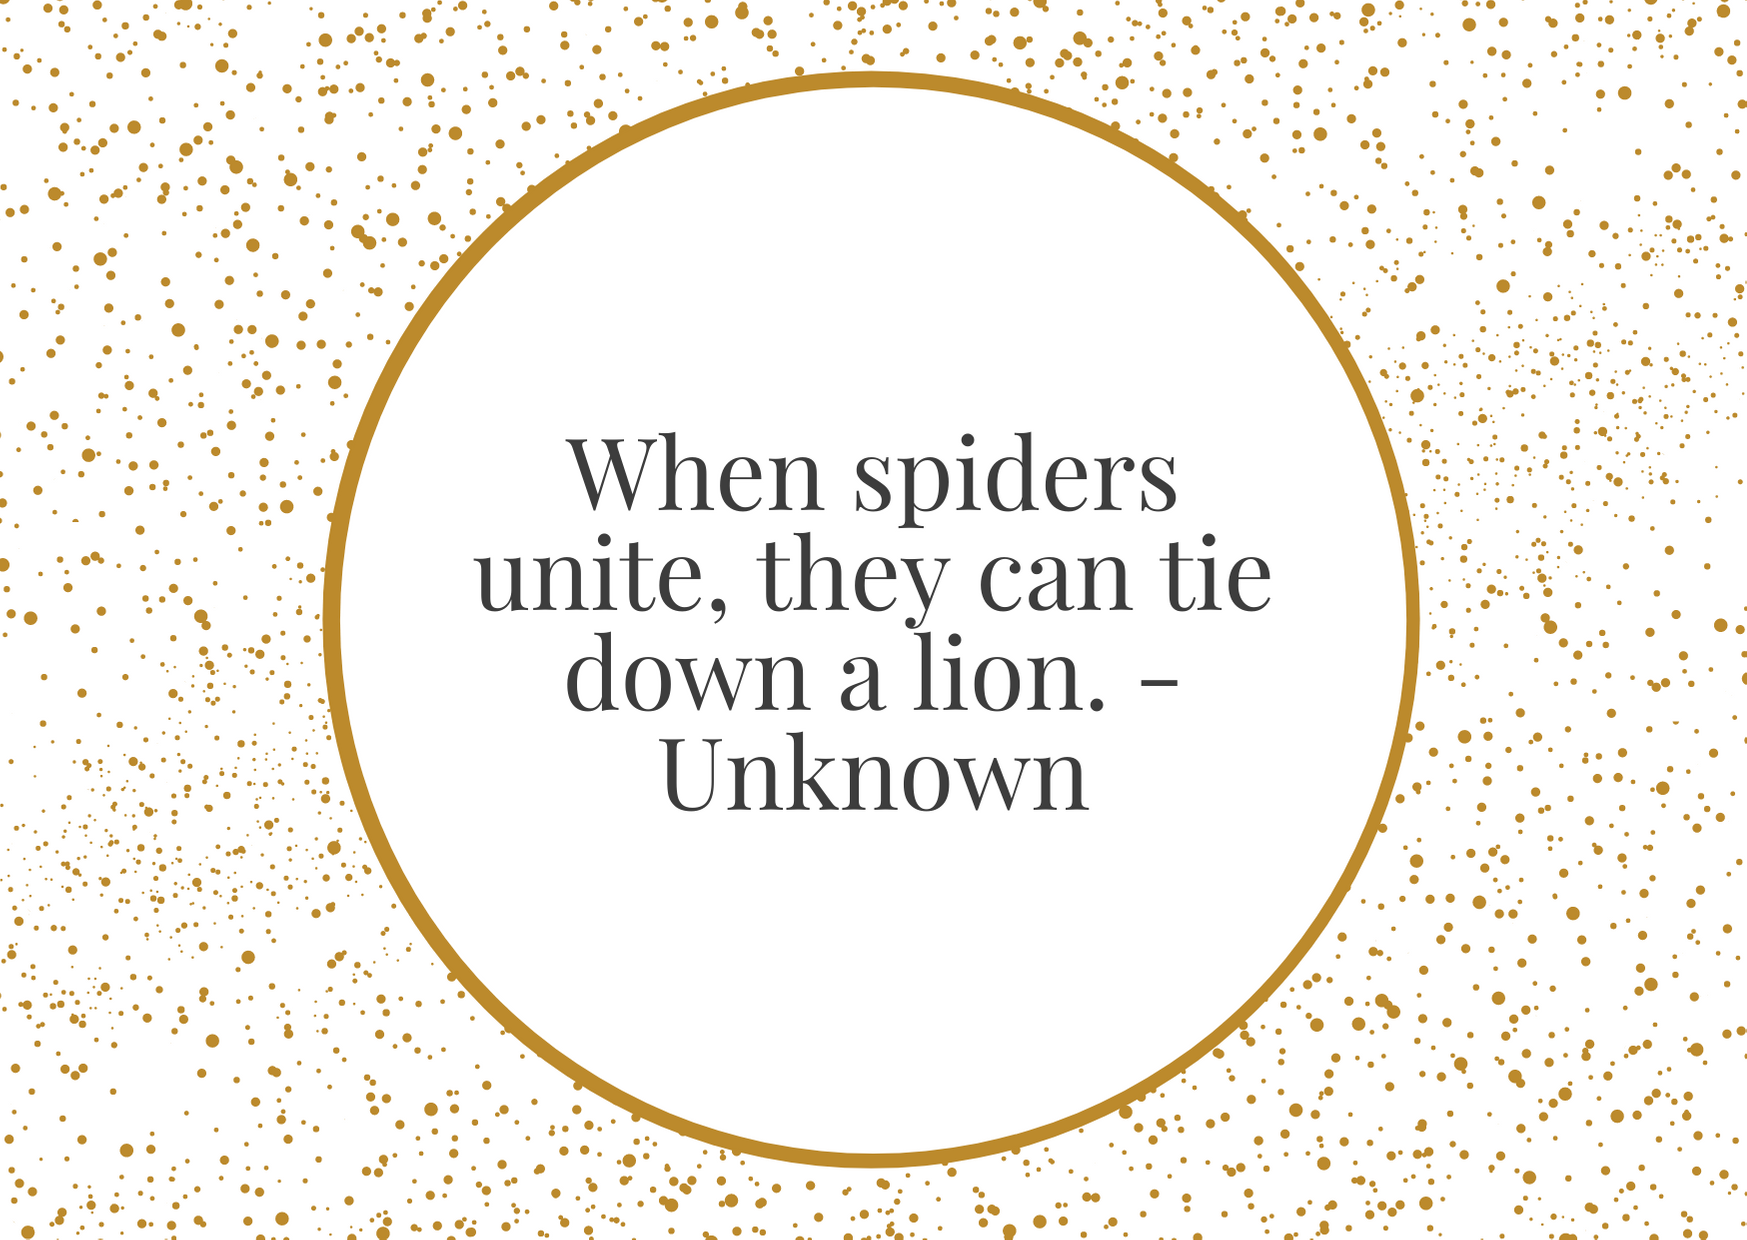 """""""When spiders unite, they can tie down a lion.""""- Unknown"""